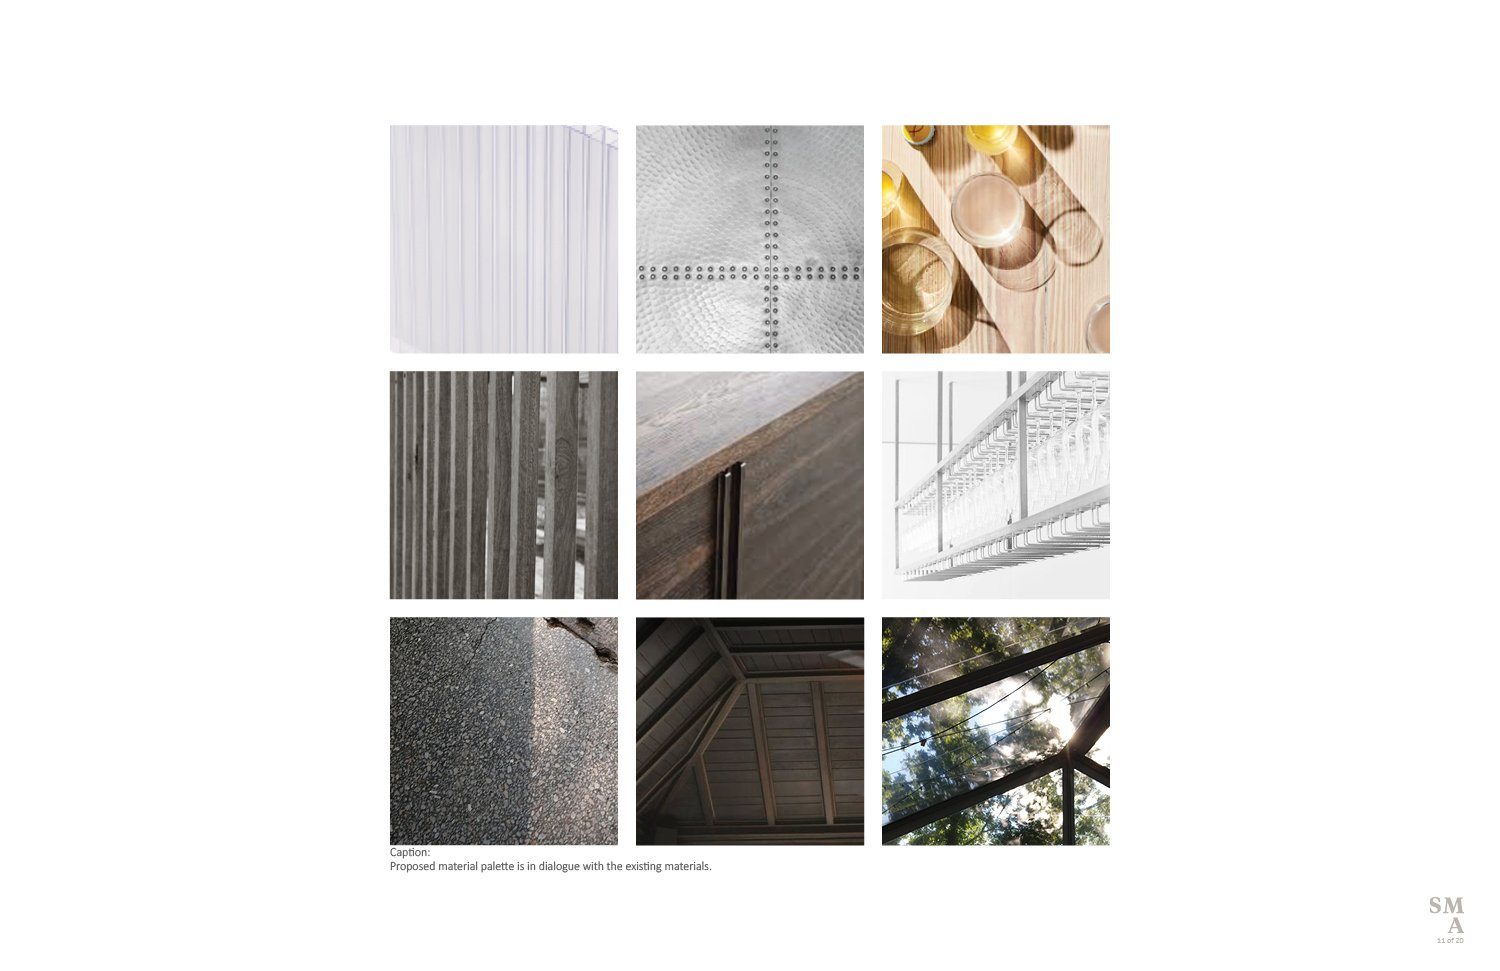 Proposed material palette is in dialogue with the existing materials. SMA | Stephen Moser Architect - Design Team}